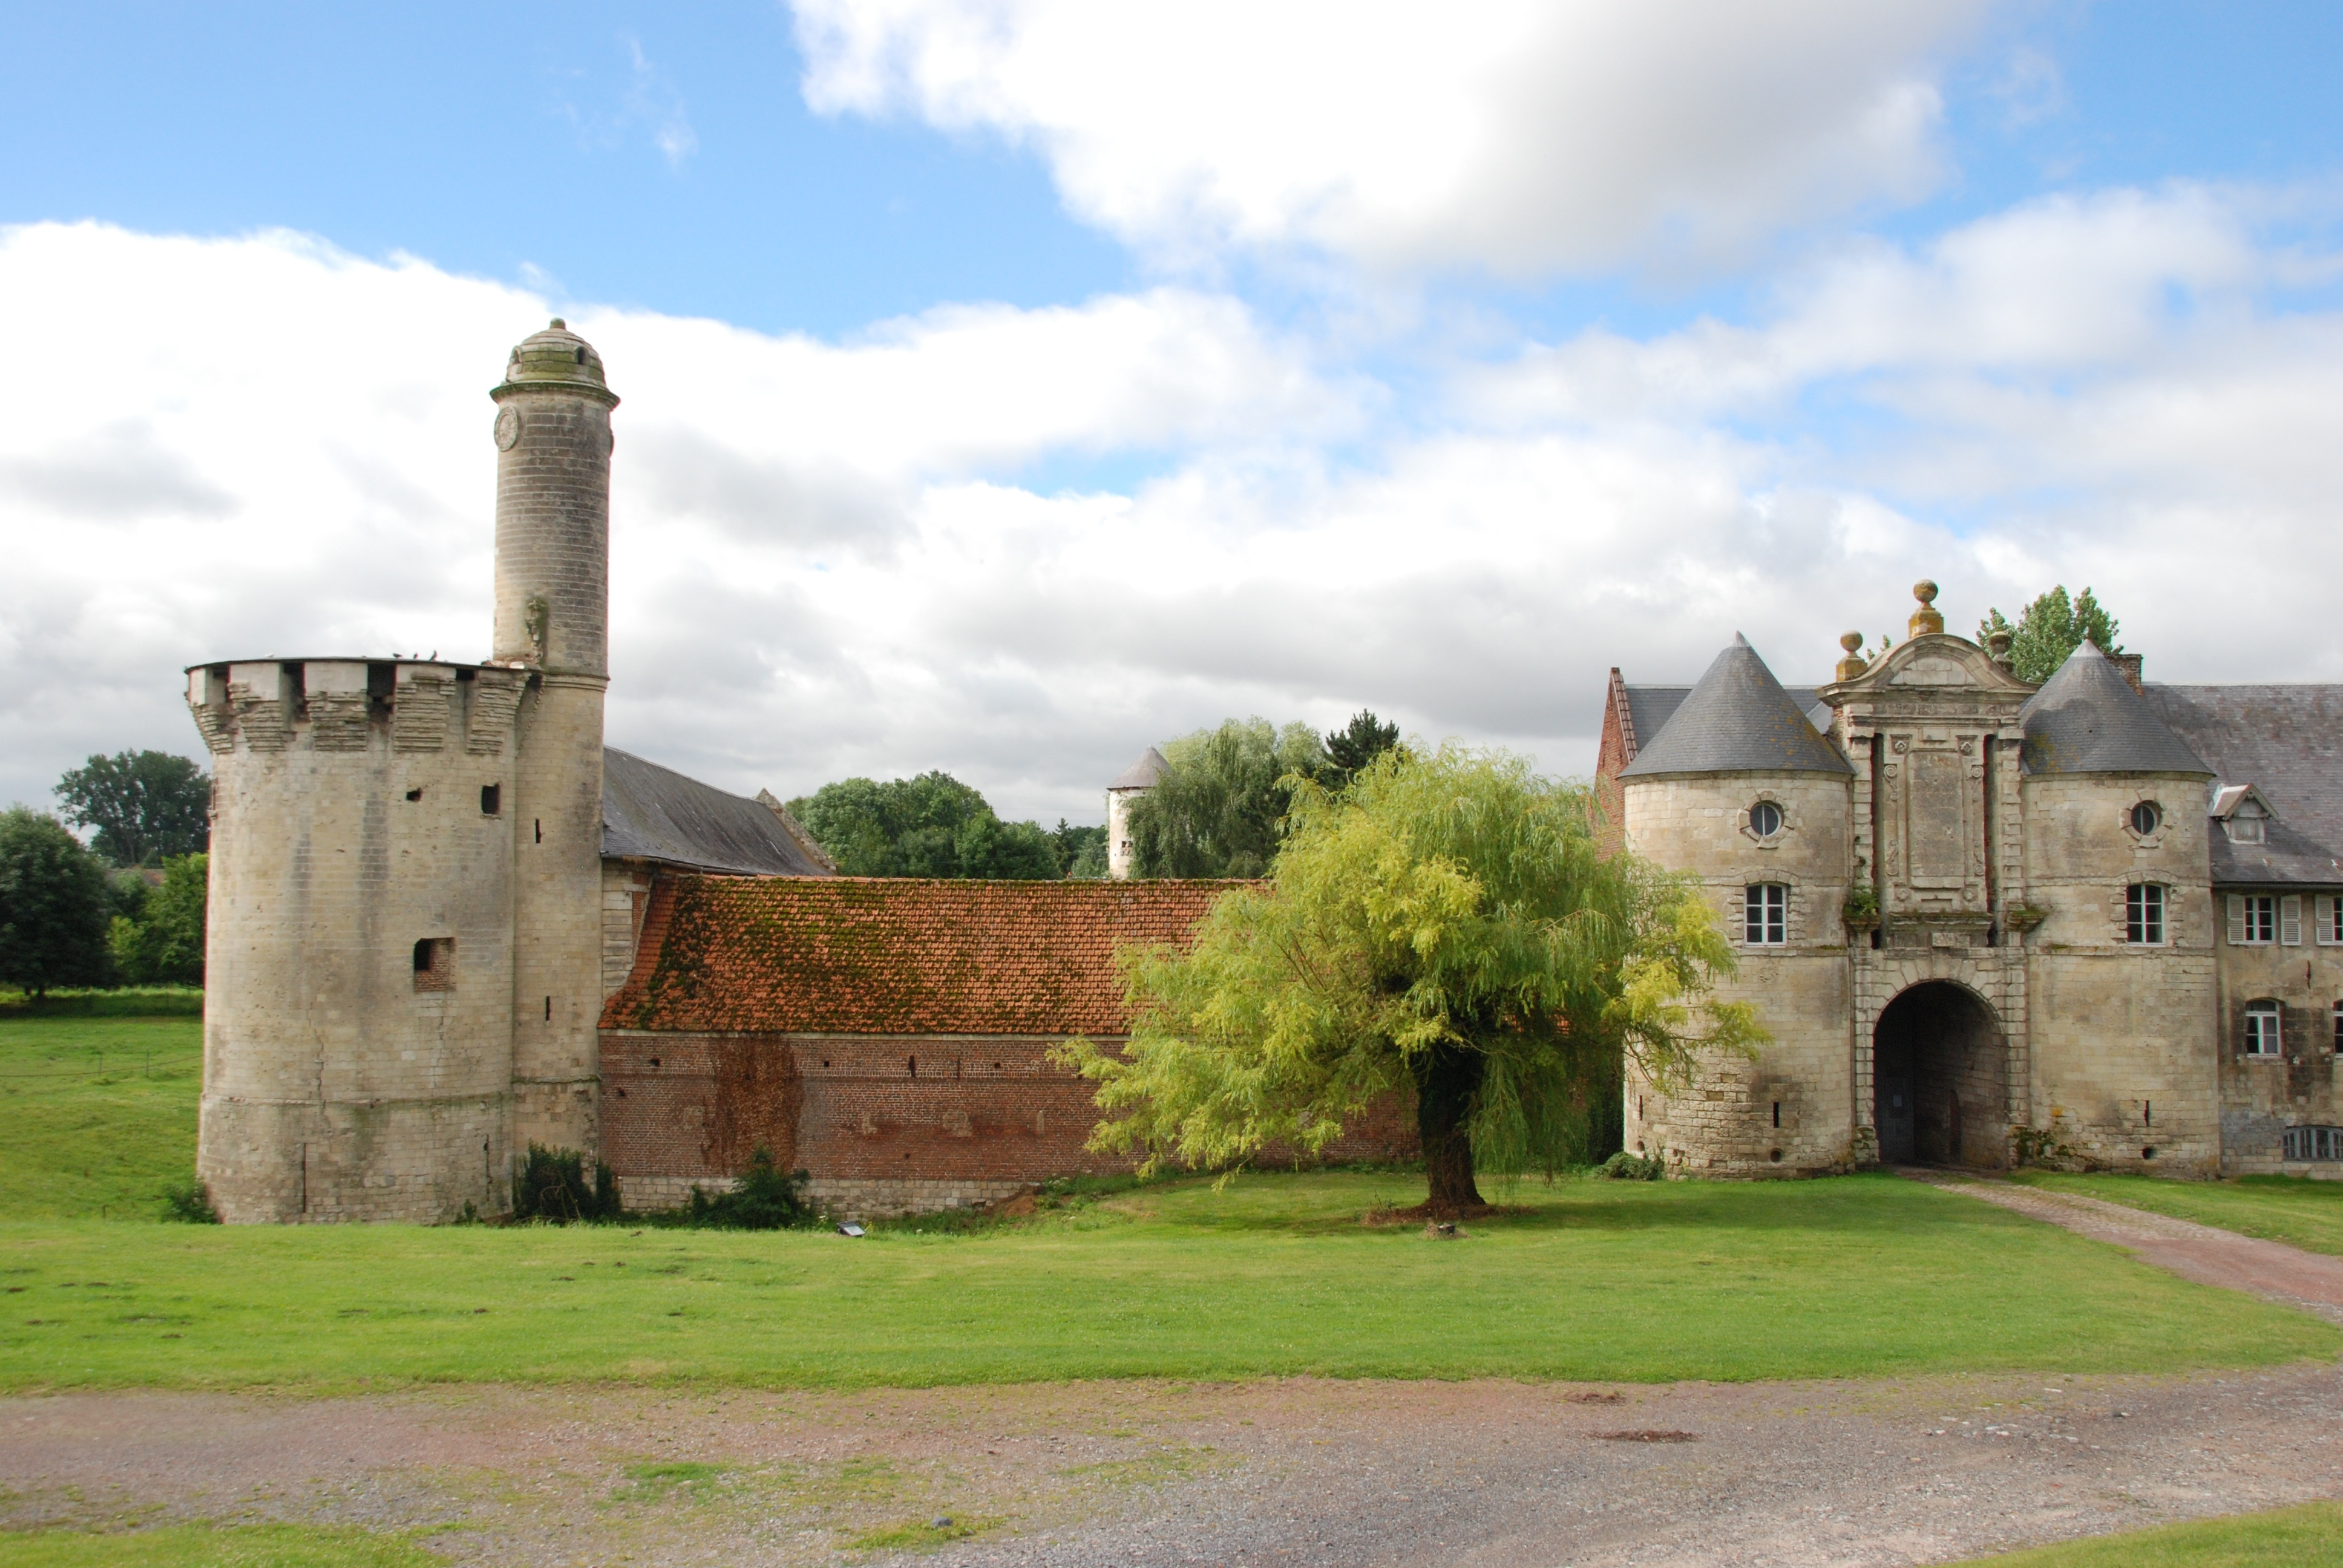 Castle with tower in the manor free image